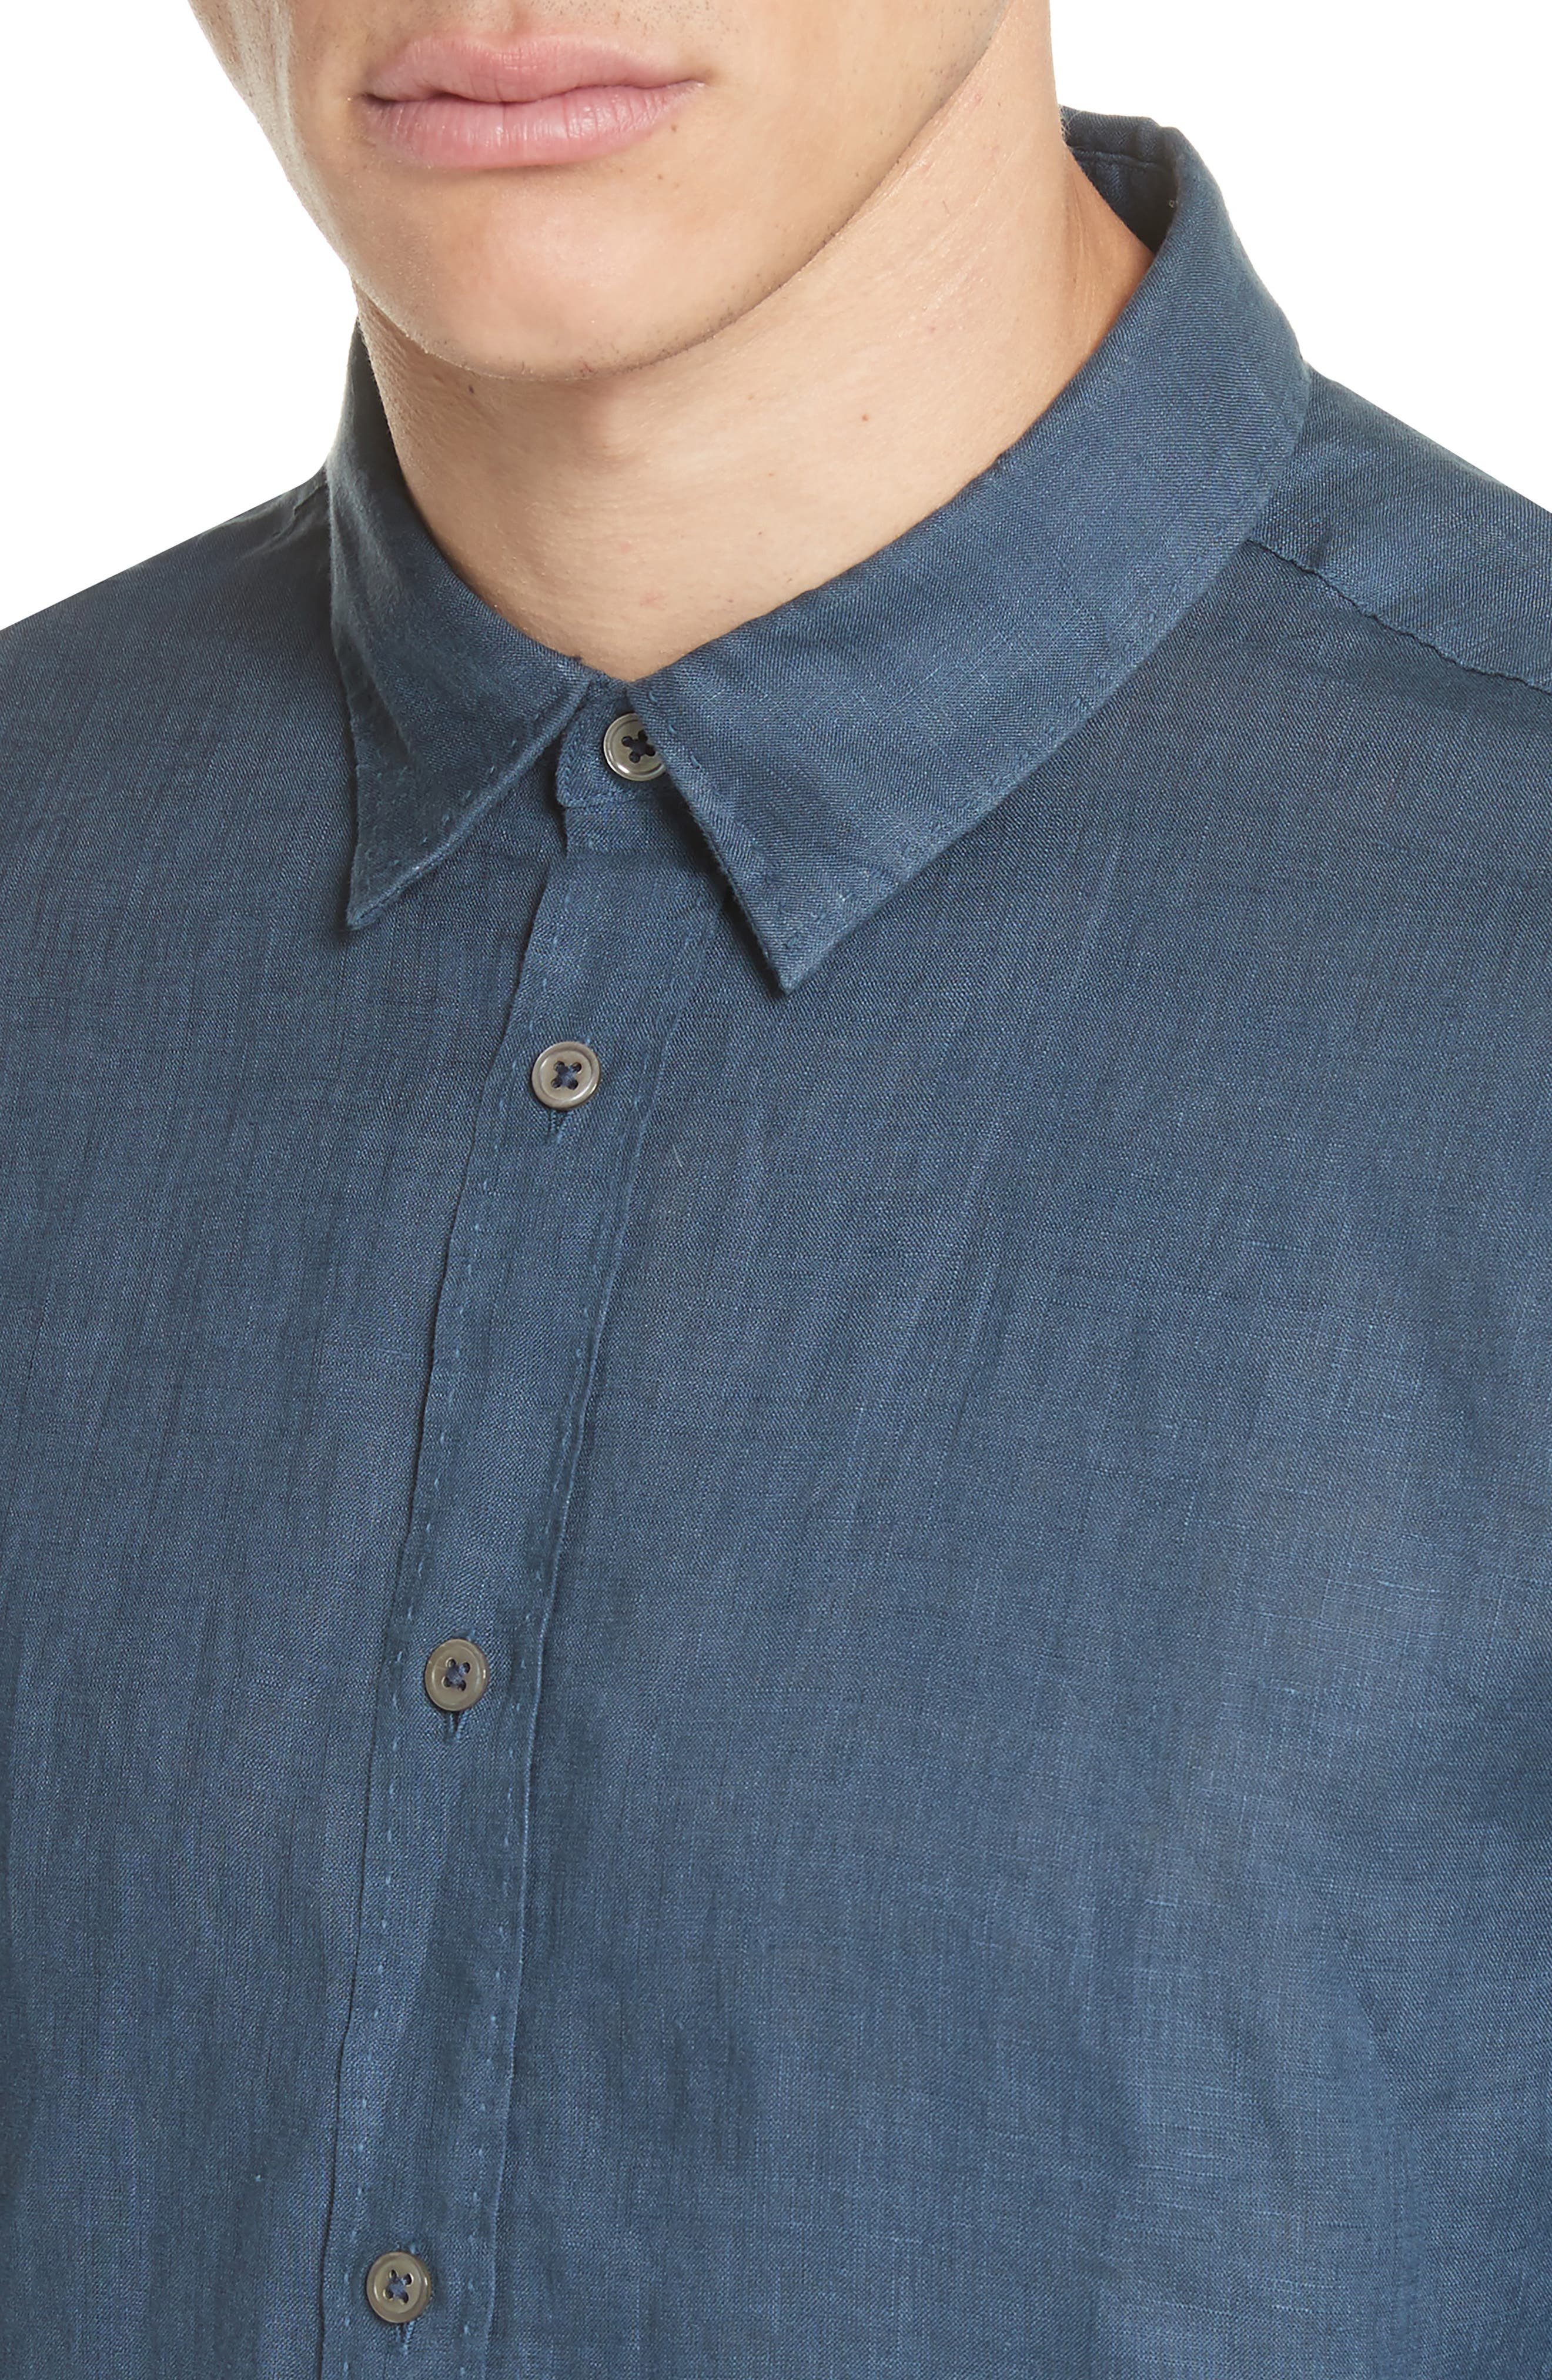 Garment Dyed Linen Shirt,                             Alternate thumbnail 4, color,                             LAKE BLUE